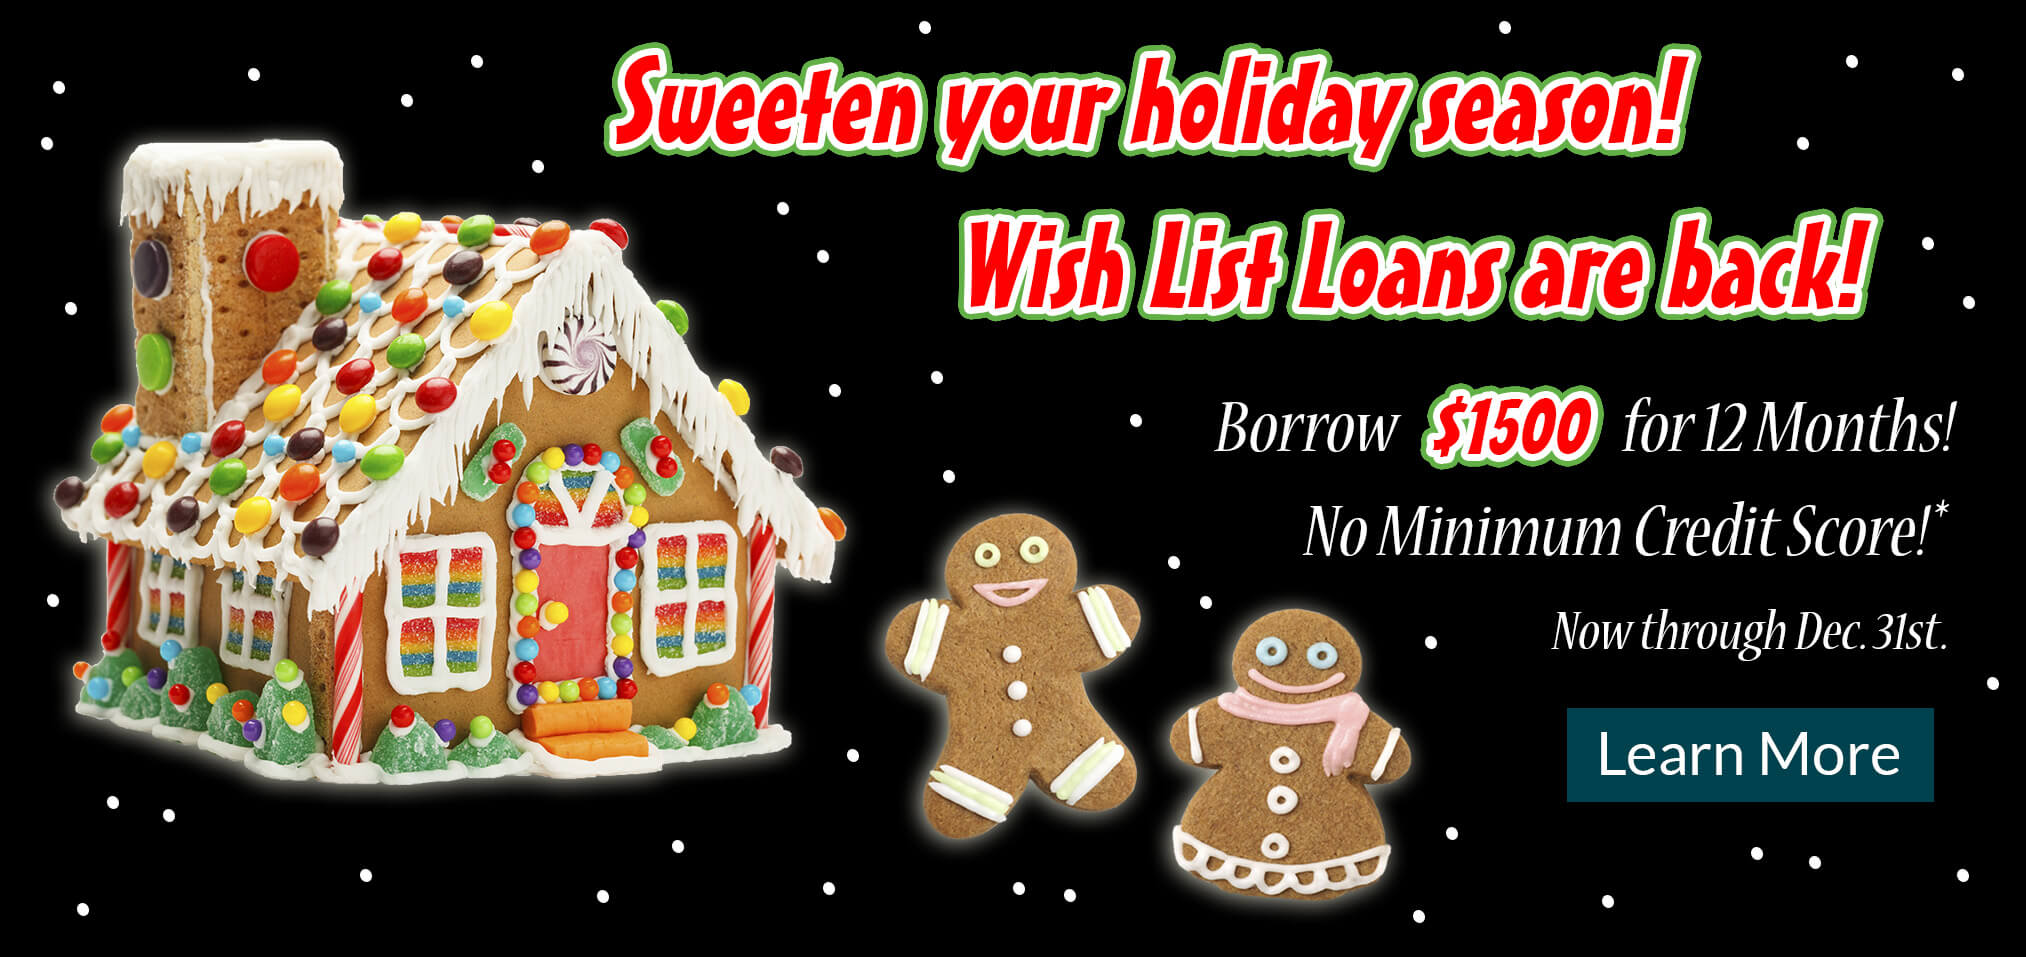 wish list loans are back borrow 1500 for 12 months - Christmas Loans No Credit Check